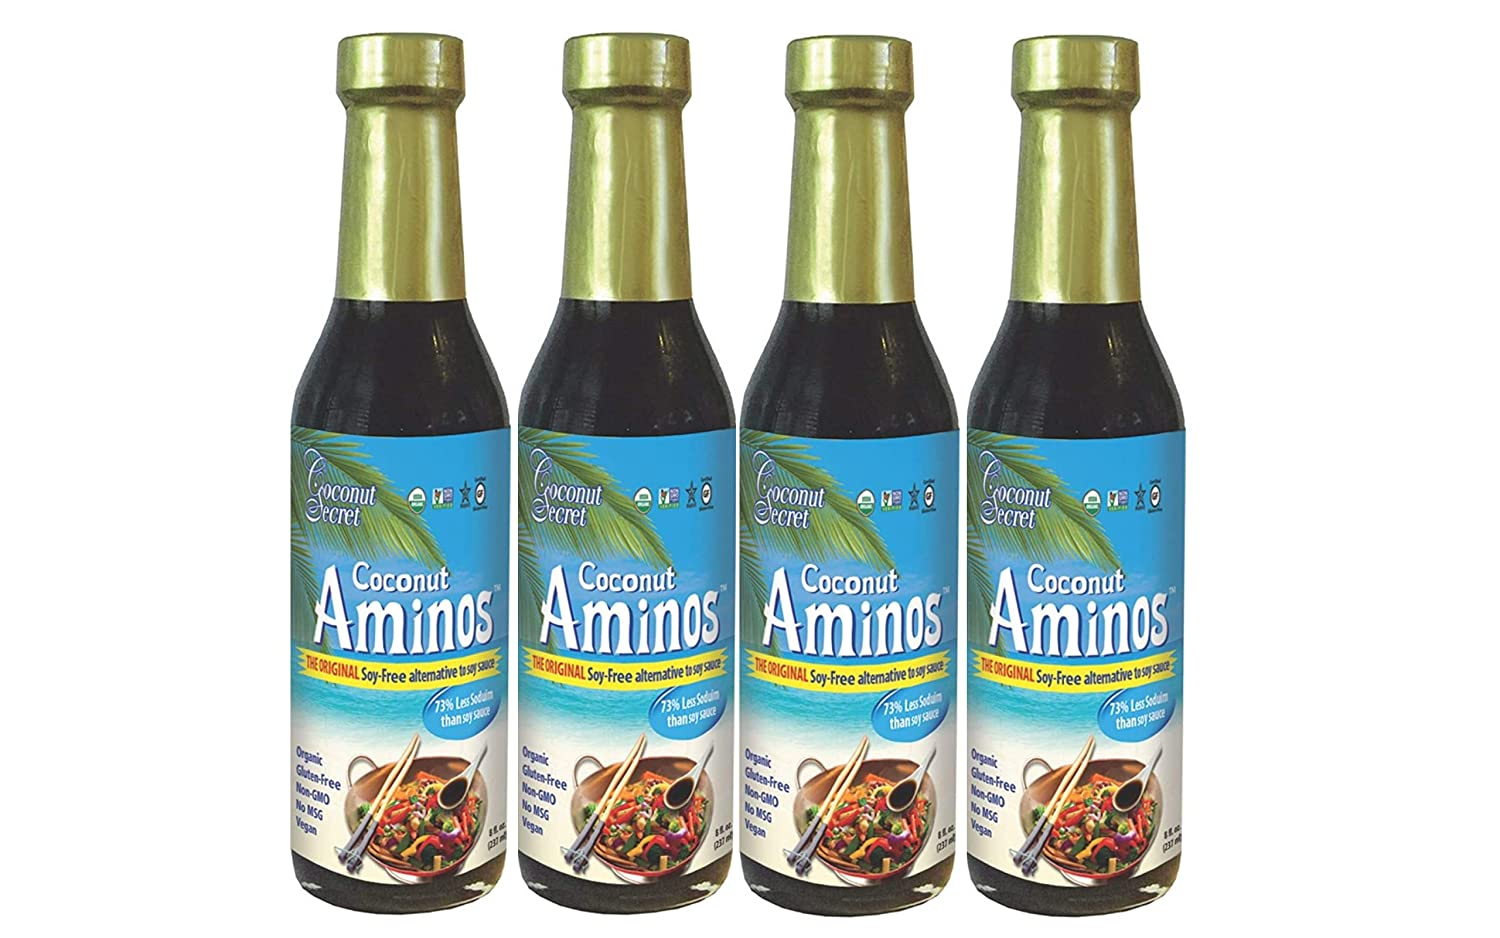 Coconut Secret's gluten-free and soy-free coconut aminos